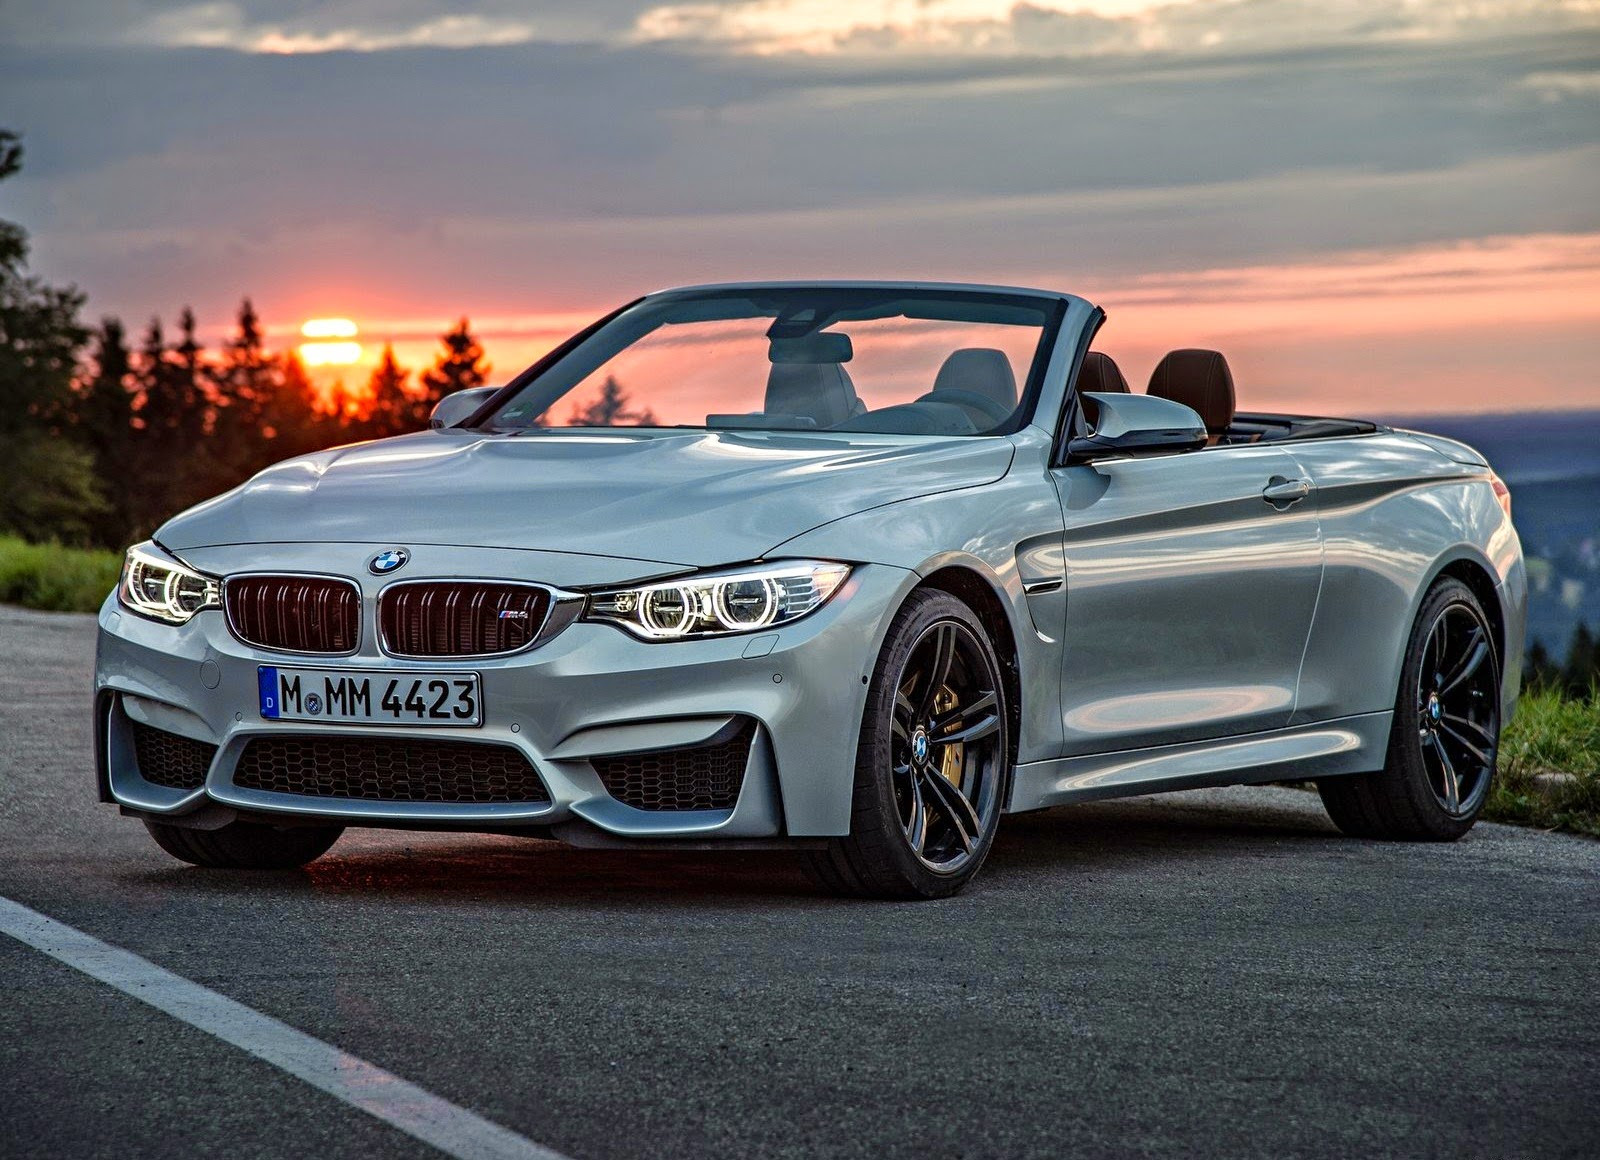 BMW M4 Convertible 2015 Car Hd Wallpaper Classic Car Wallpaper Hd